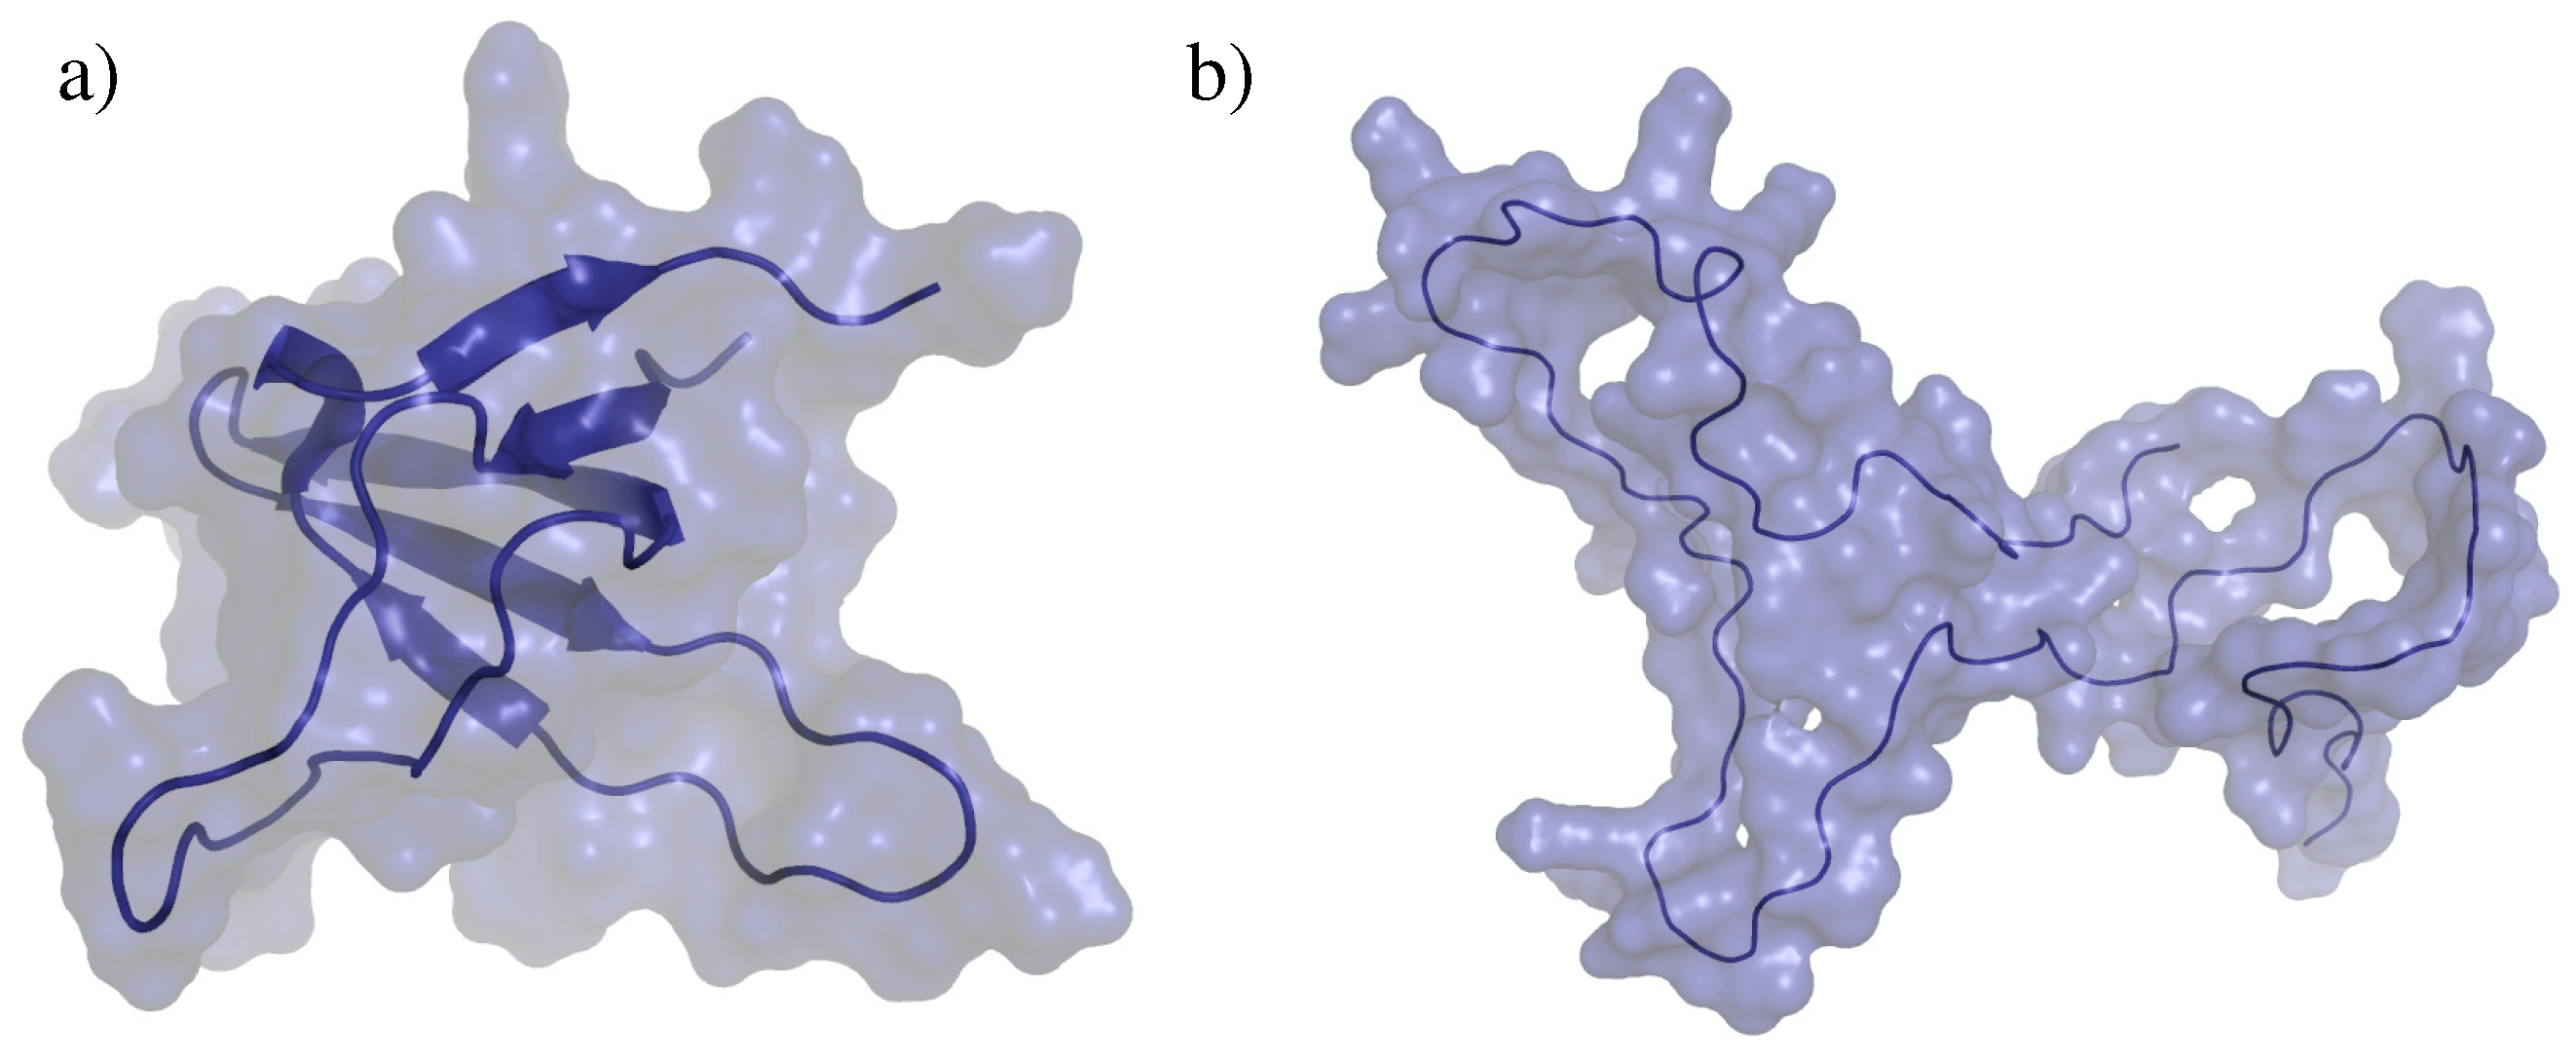 Molecules | Free Full-Text | Segmenting Proteins into Tripeptides to on partnership puzzle, world's hardest puzzle, missing puzzle, minion puzzle, enterprise risk management puzzle, world's biggest puzzle, italy's bodies of water puzzle, usa map floor puzzle, map of africa puzzle, map of usa puzzle, lord's prayer puzzle, united states puzzle, california jigsaw puzzle, continent puzzle, mexico map puzzle, usa map jigsaw puzzle, new york puzzle, muppet babies puzzle, florida map puzzle, world map puzzle,